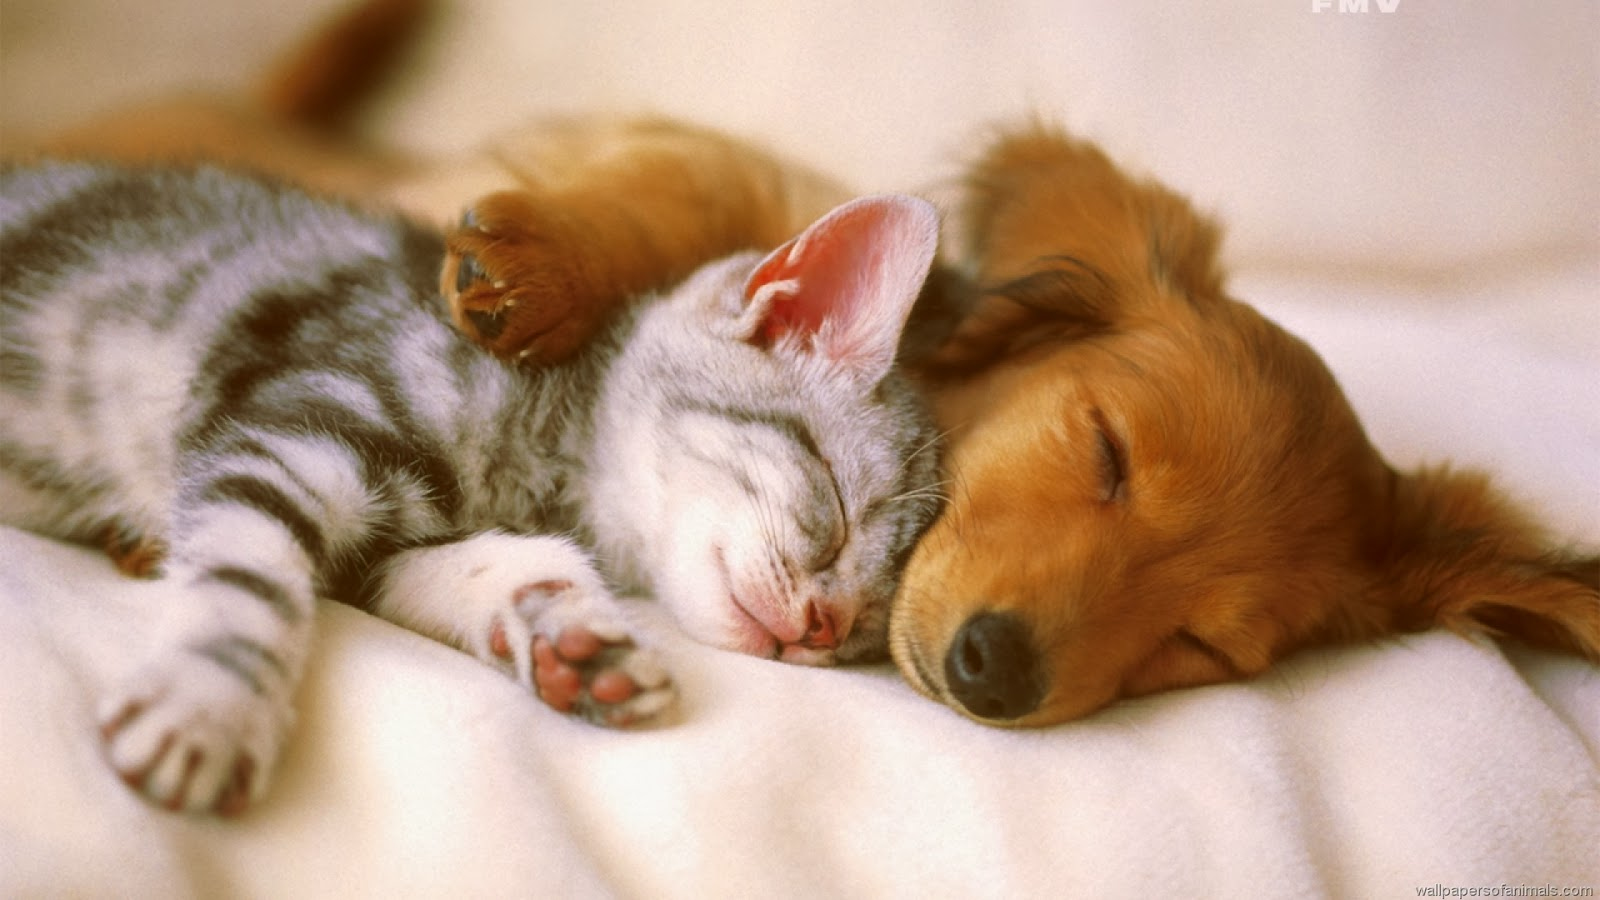 Animals Zoo Park Cute Cat with Cute Dog Wallpapers 4 1600x900